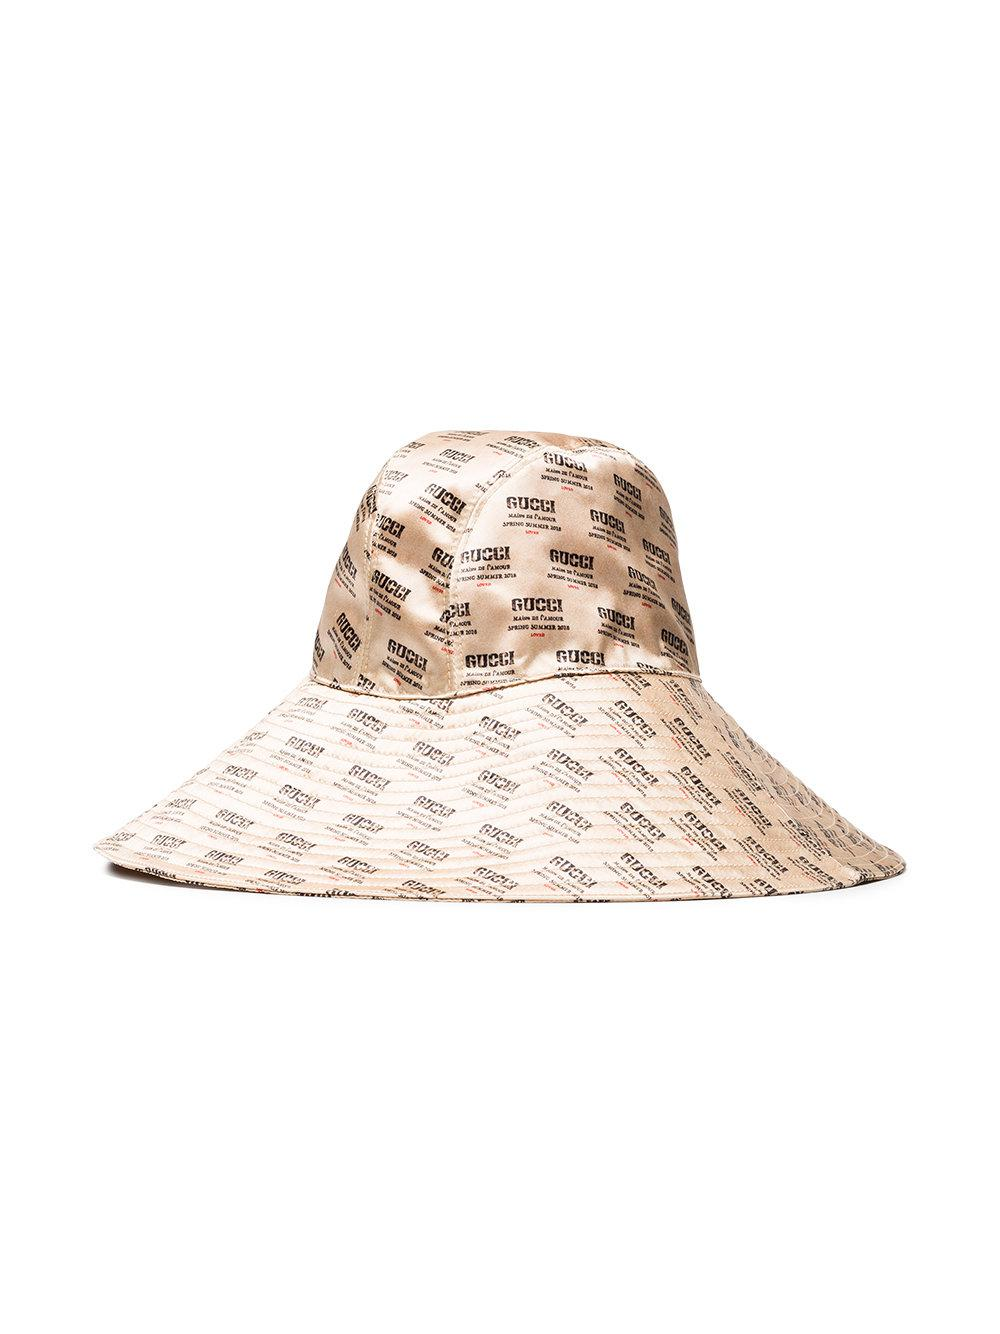 3fbe3b9d8 Gucci Stamps Hat in Natural - Lyst